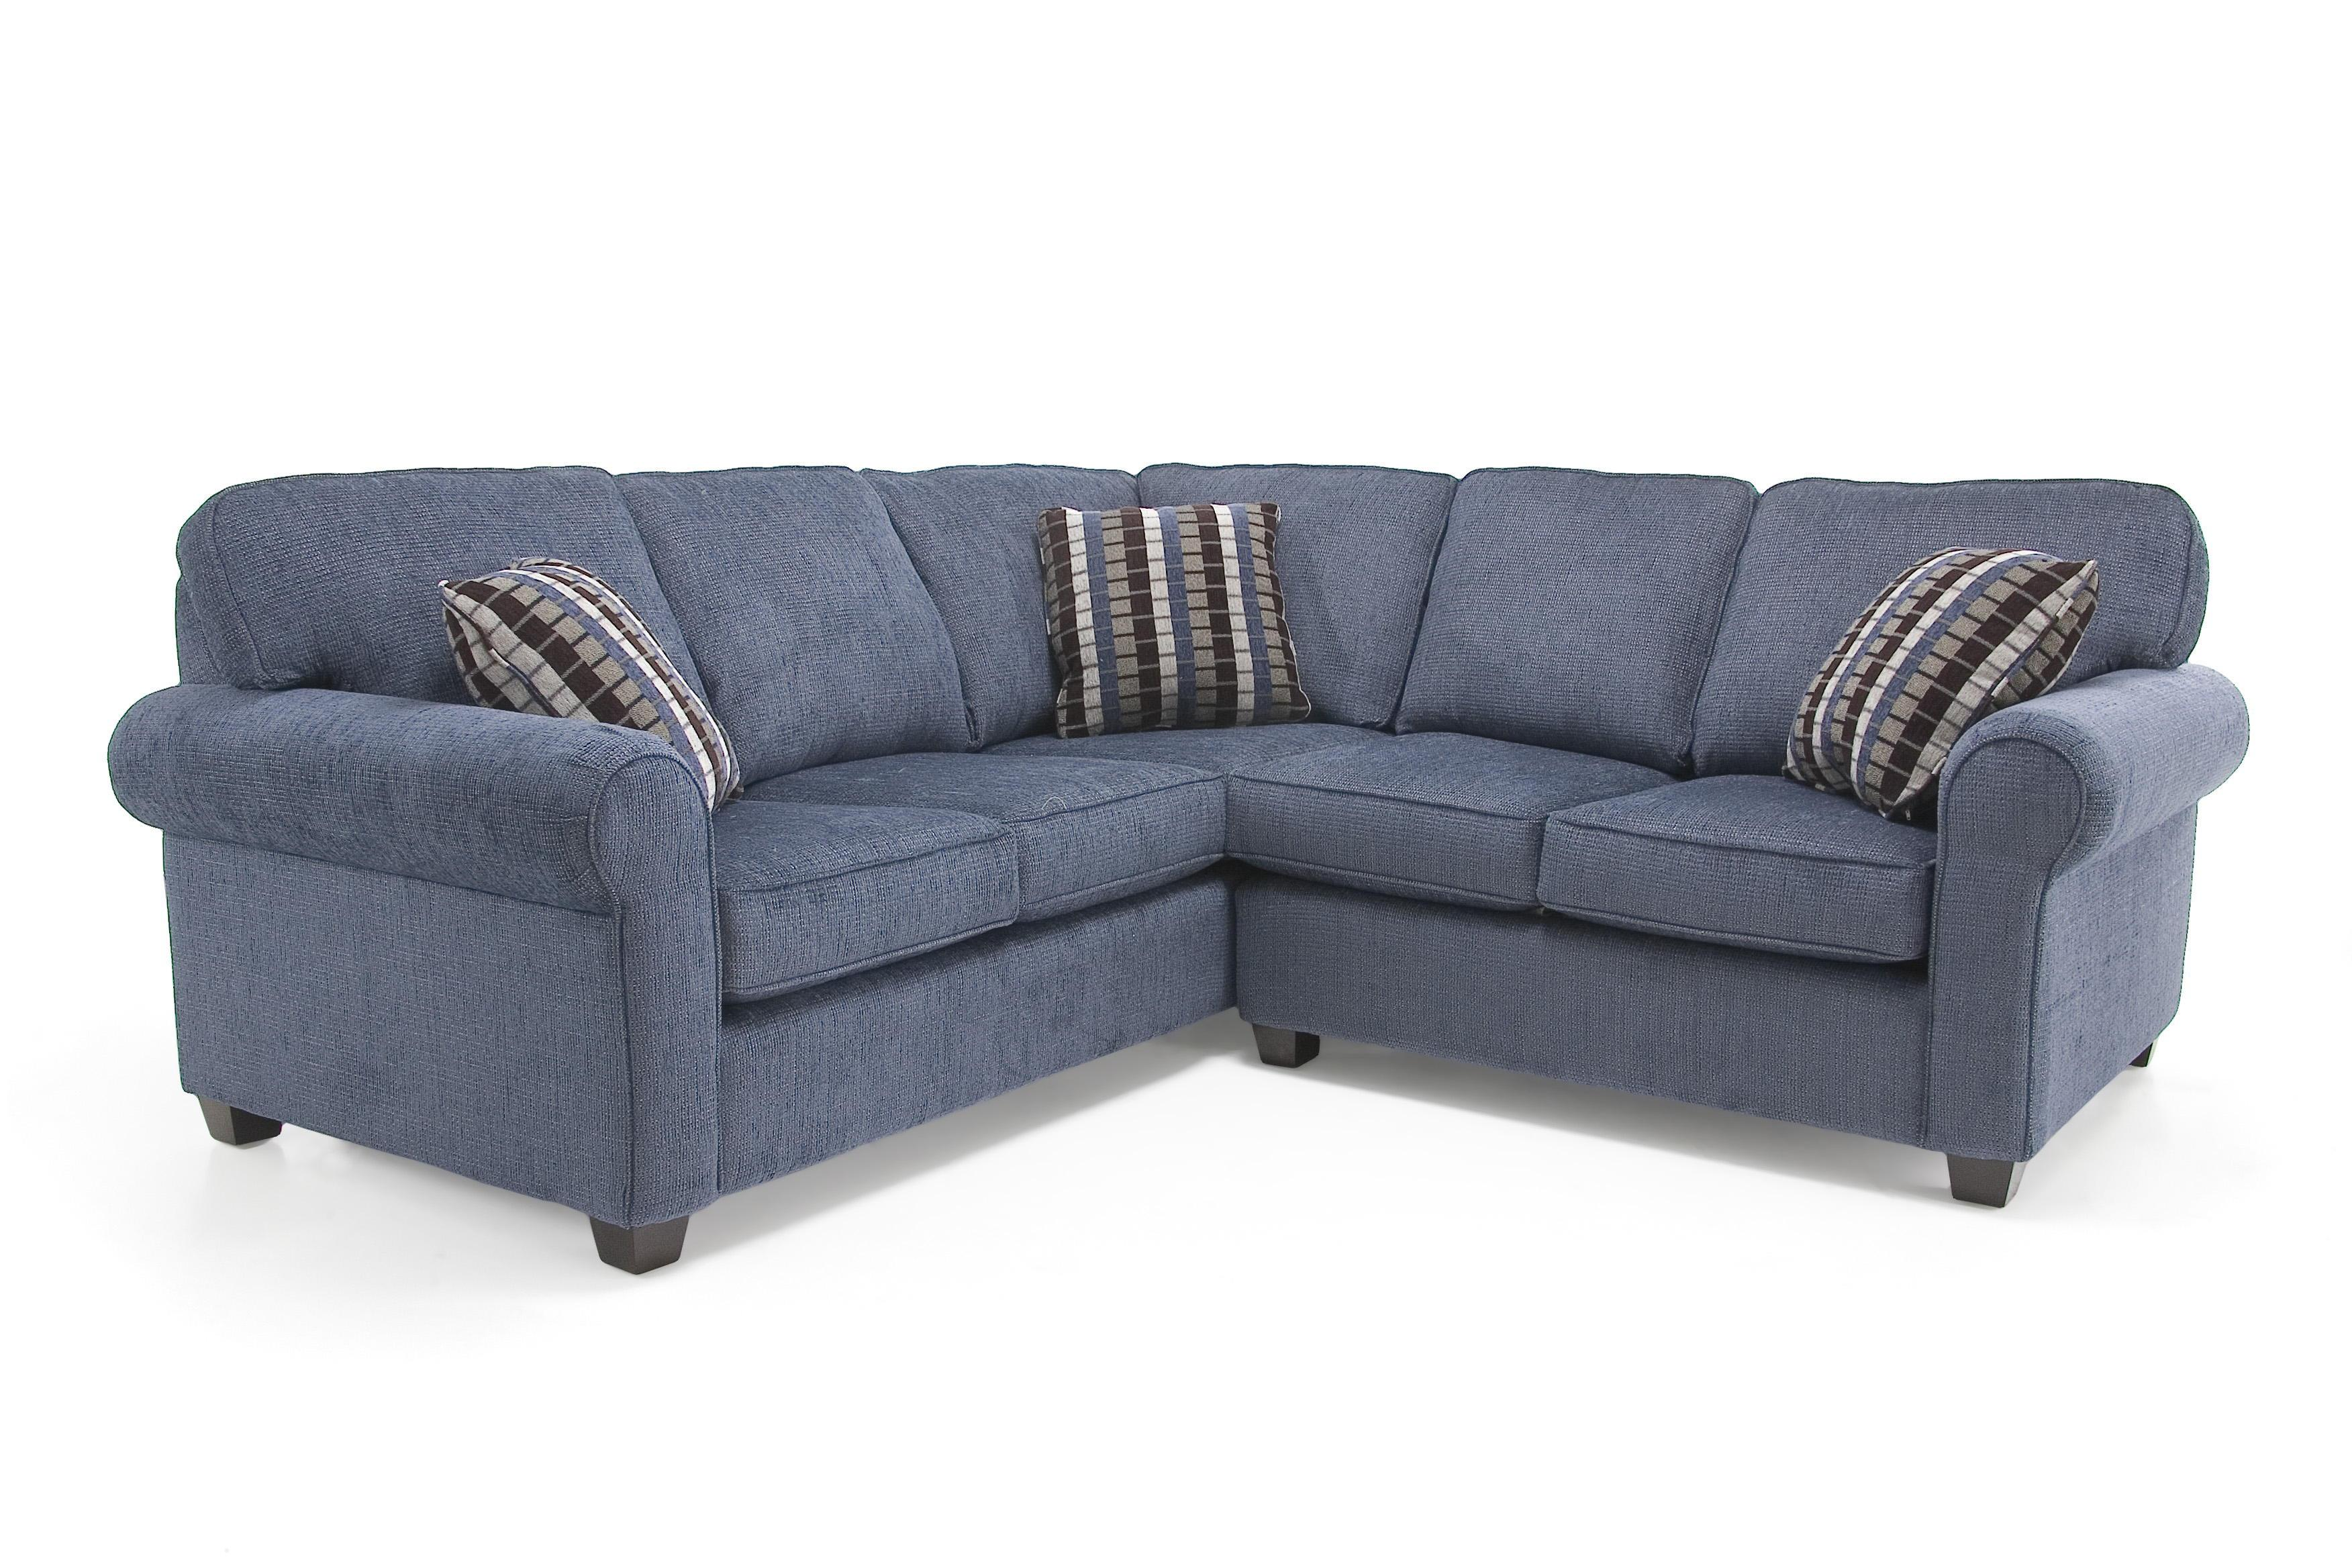 2576 Transitional Sectional Sofa by Decor-Rest at Johnny Janosik